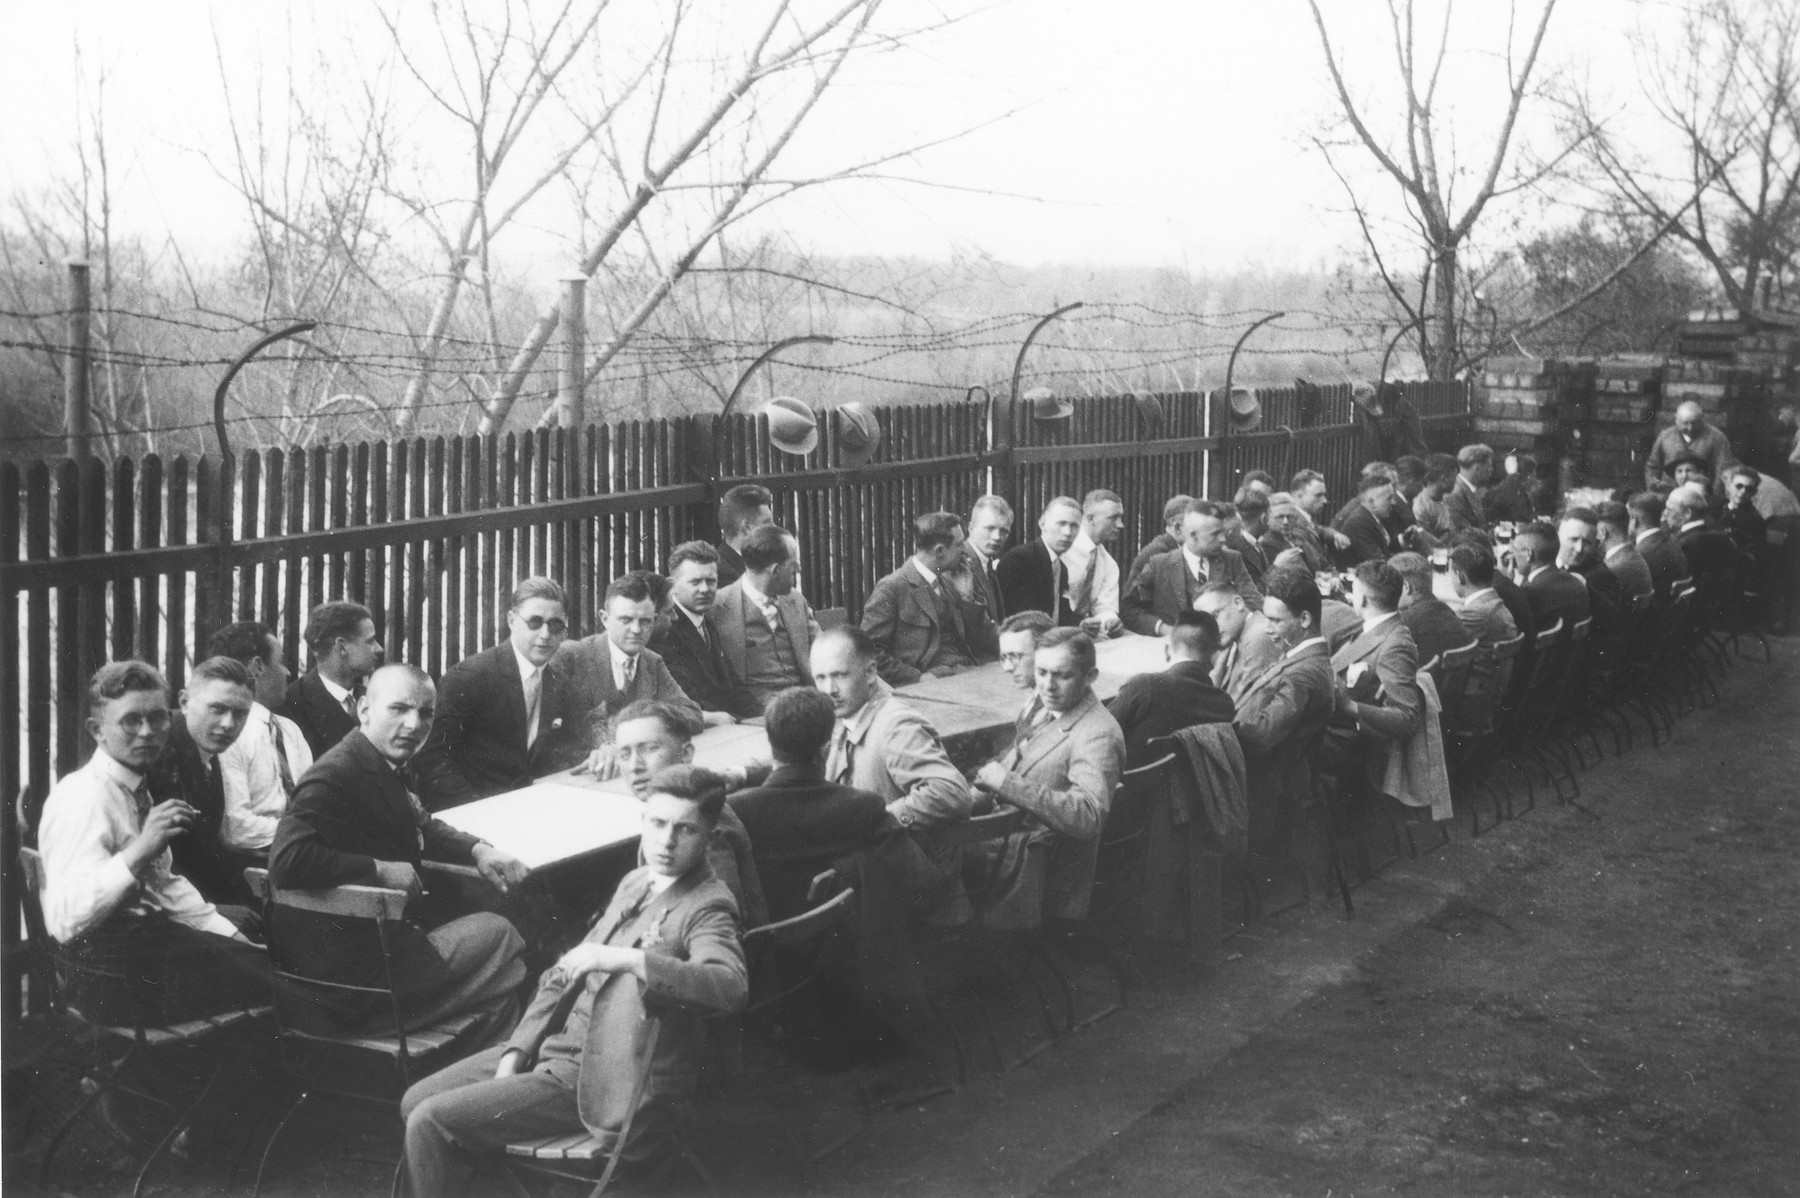 Herbert Mosheim (second from the left on the near side of the table) sits outside with members of his engineering class at the Städtische Erwerbshochschule.